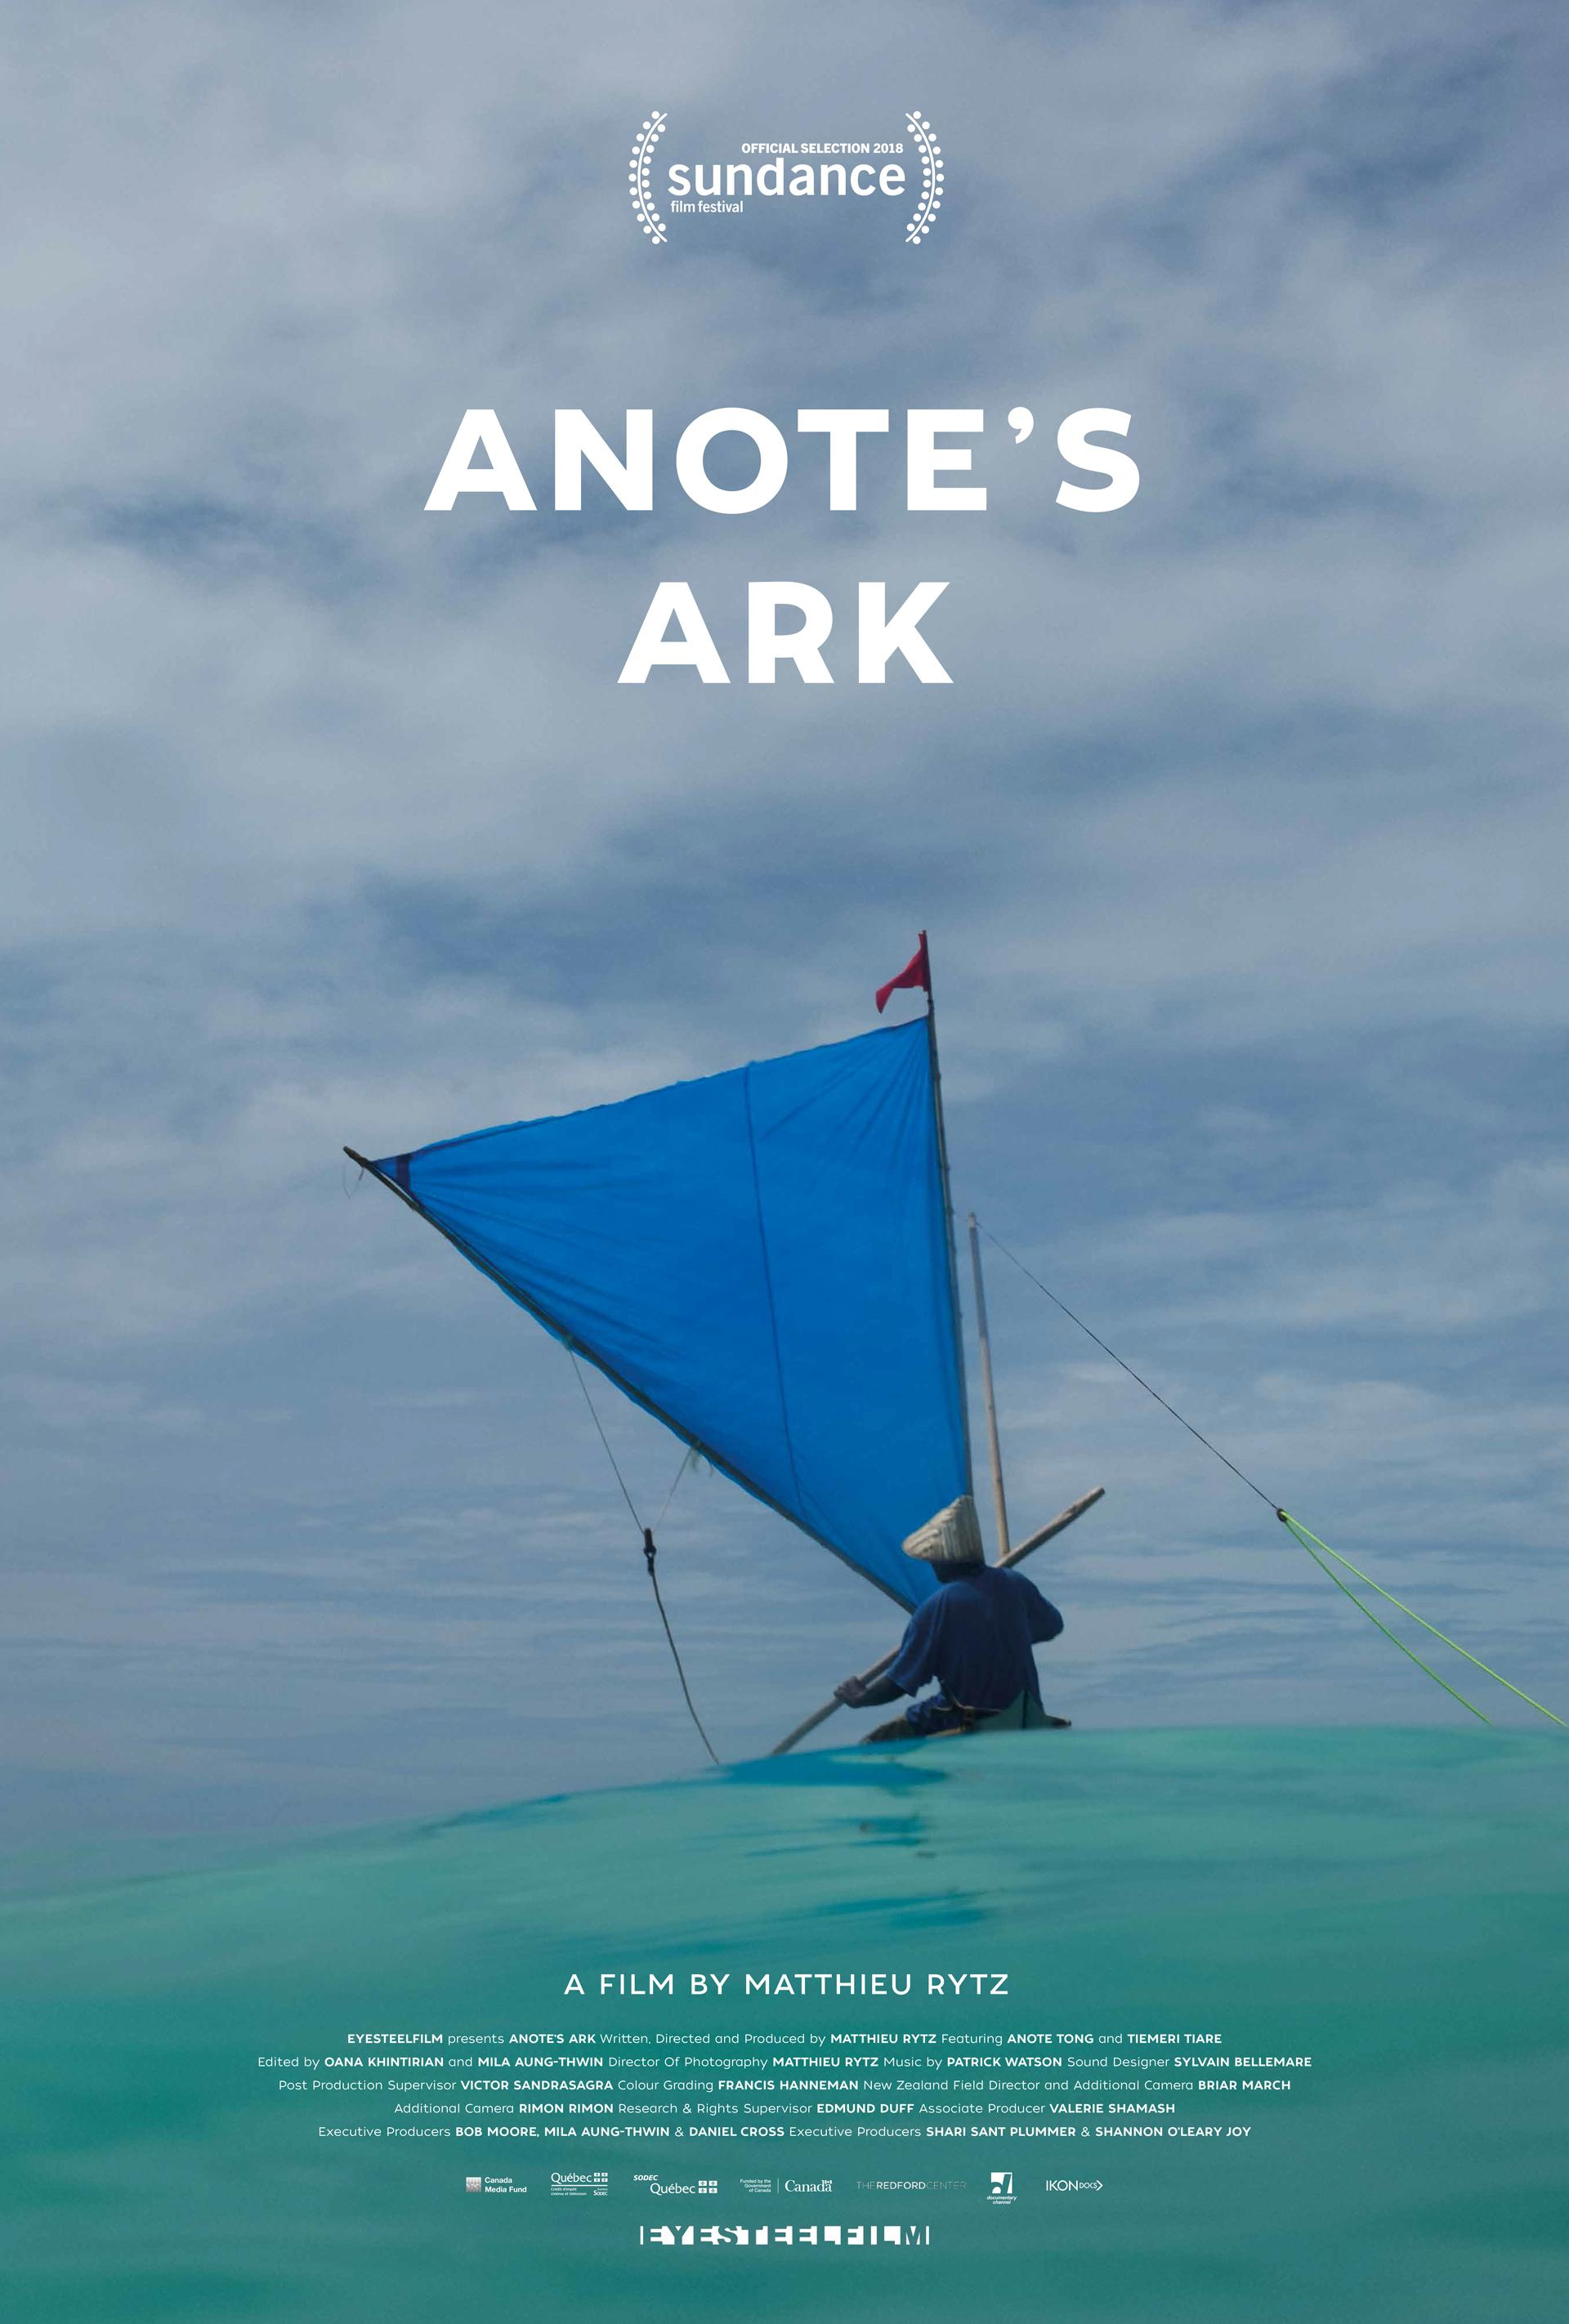 Showtime for Anote\'s Ark playing Aug 15th, 2018 at 7:00 PM ...